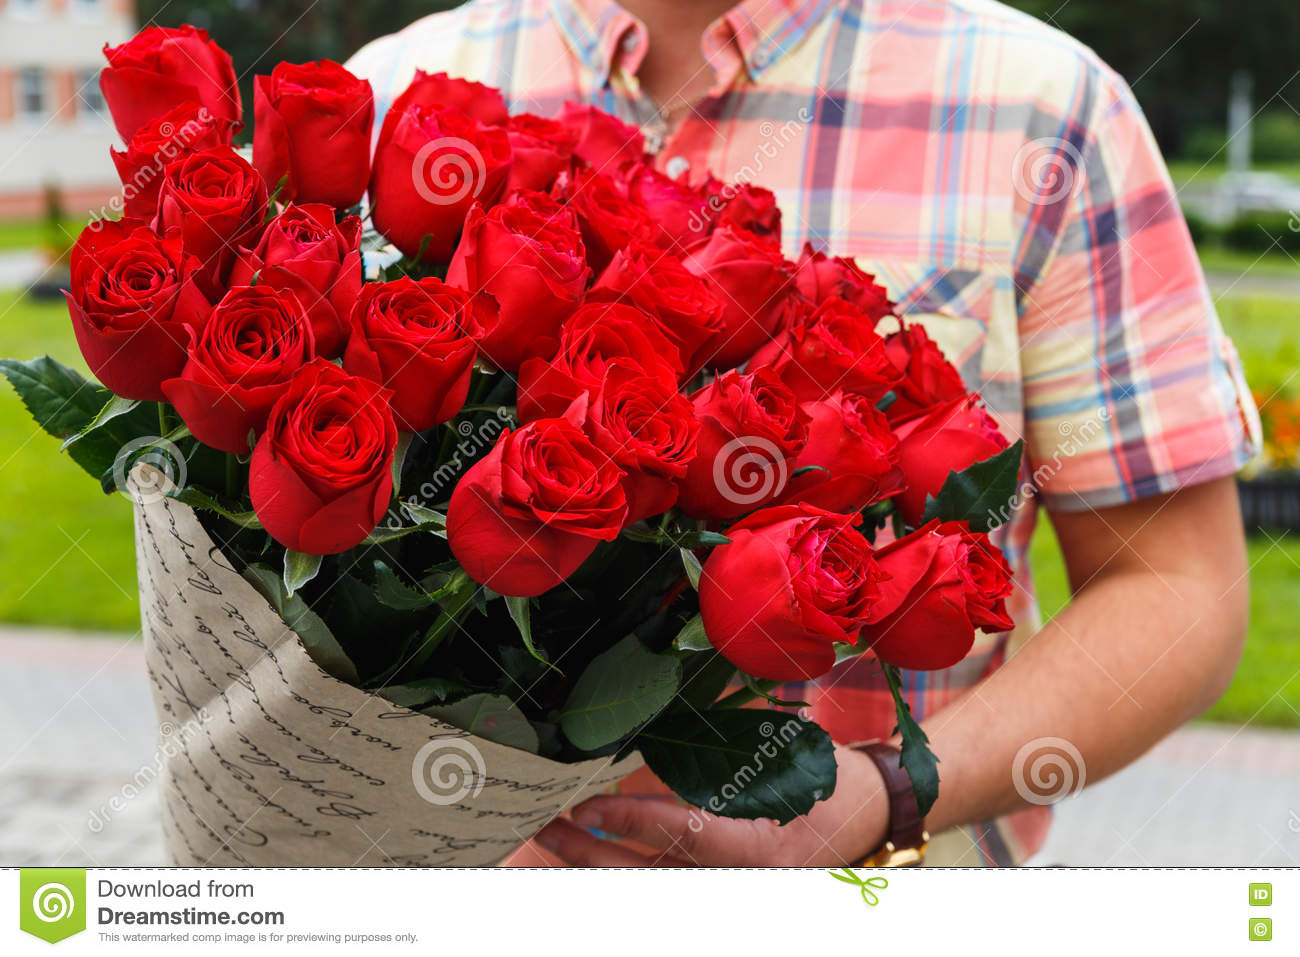 un homme portant un bouquet norme des roses rouges image stock image du caucasien activit. Black Bedroom Furniture Sets. Home Design Ideas